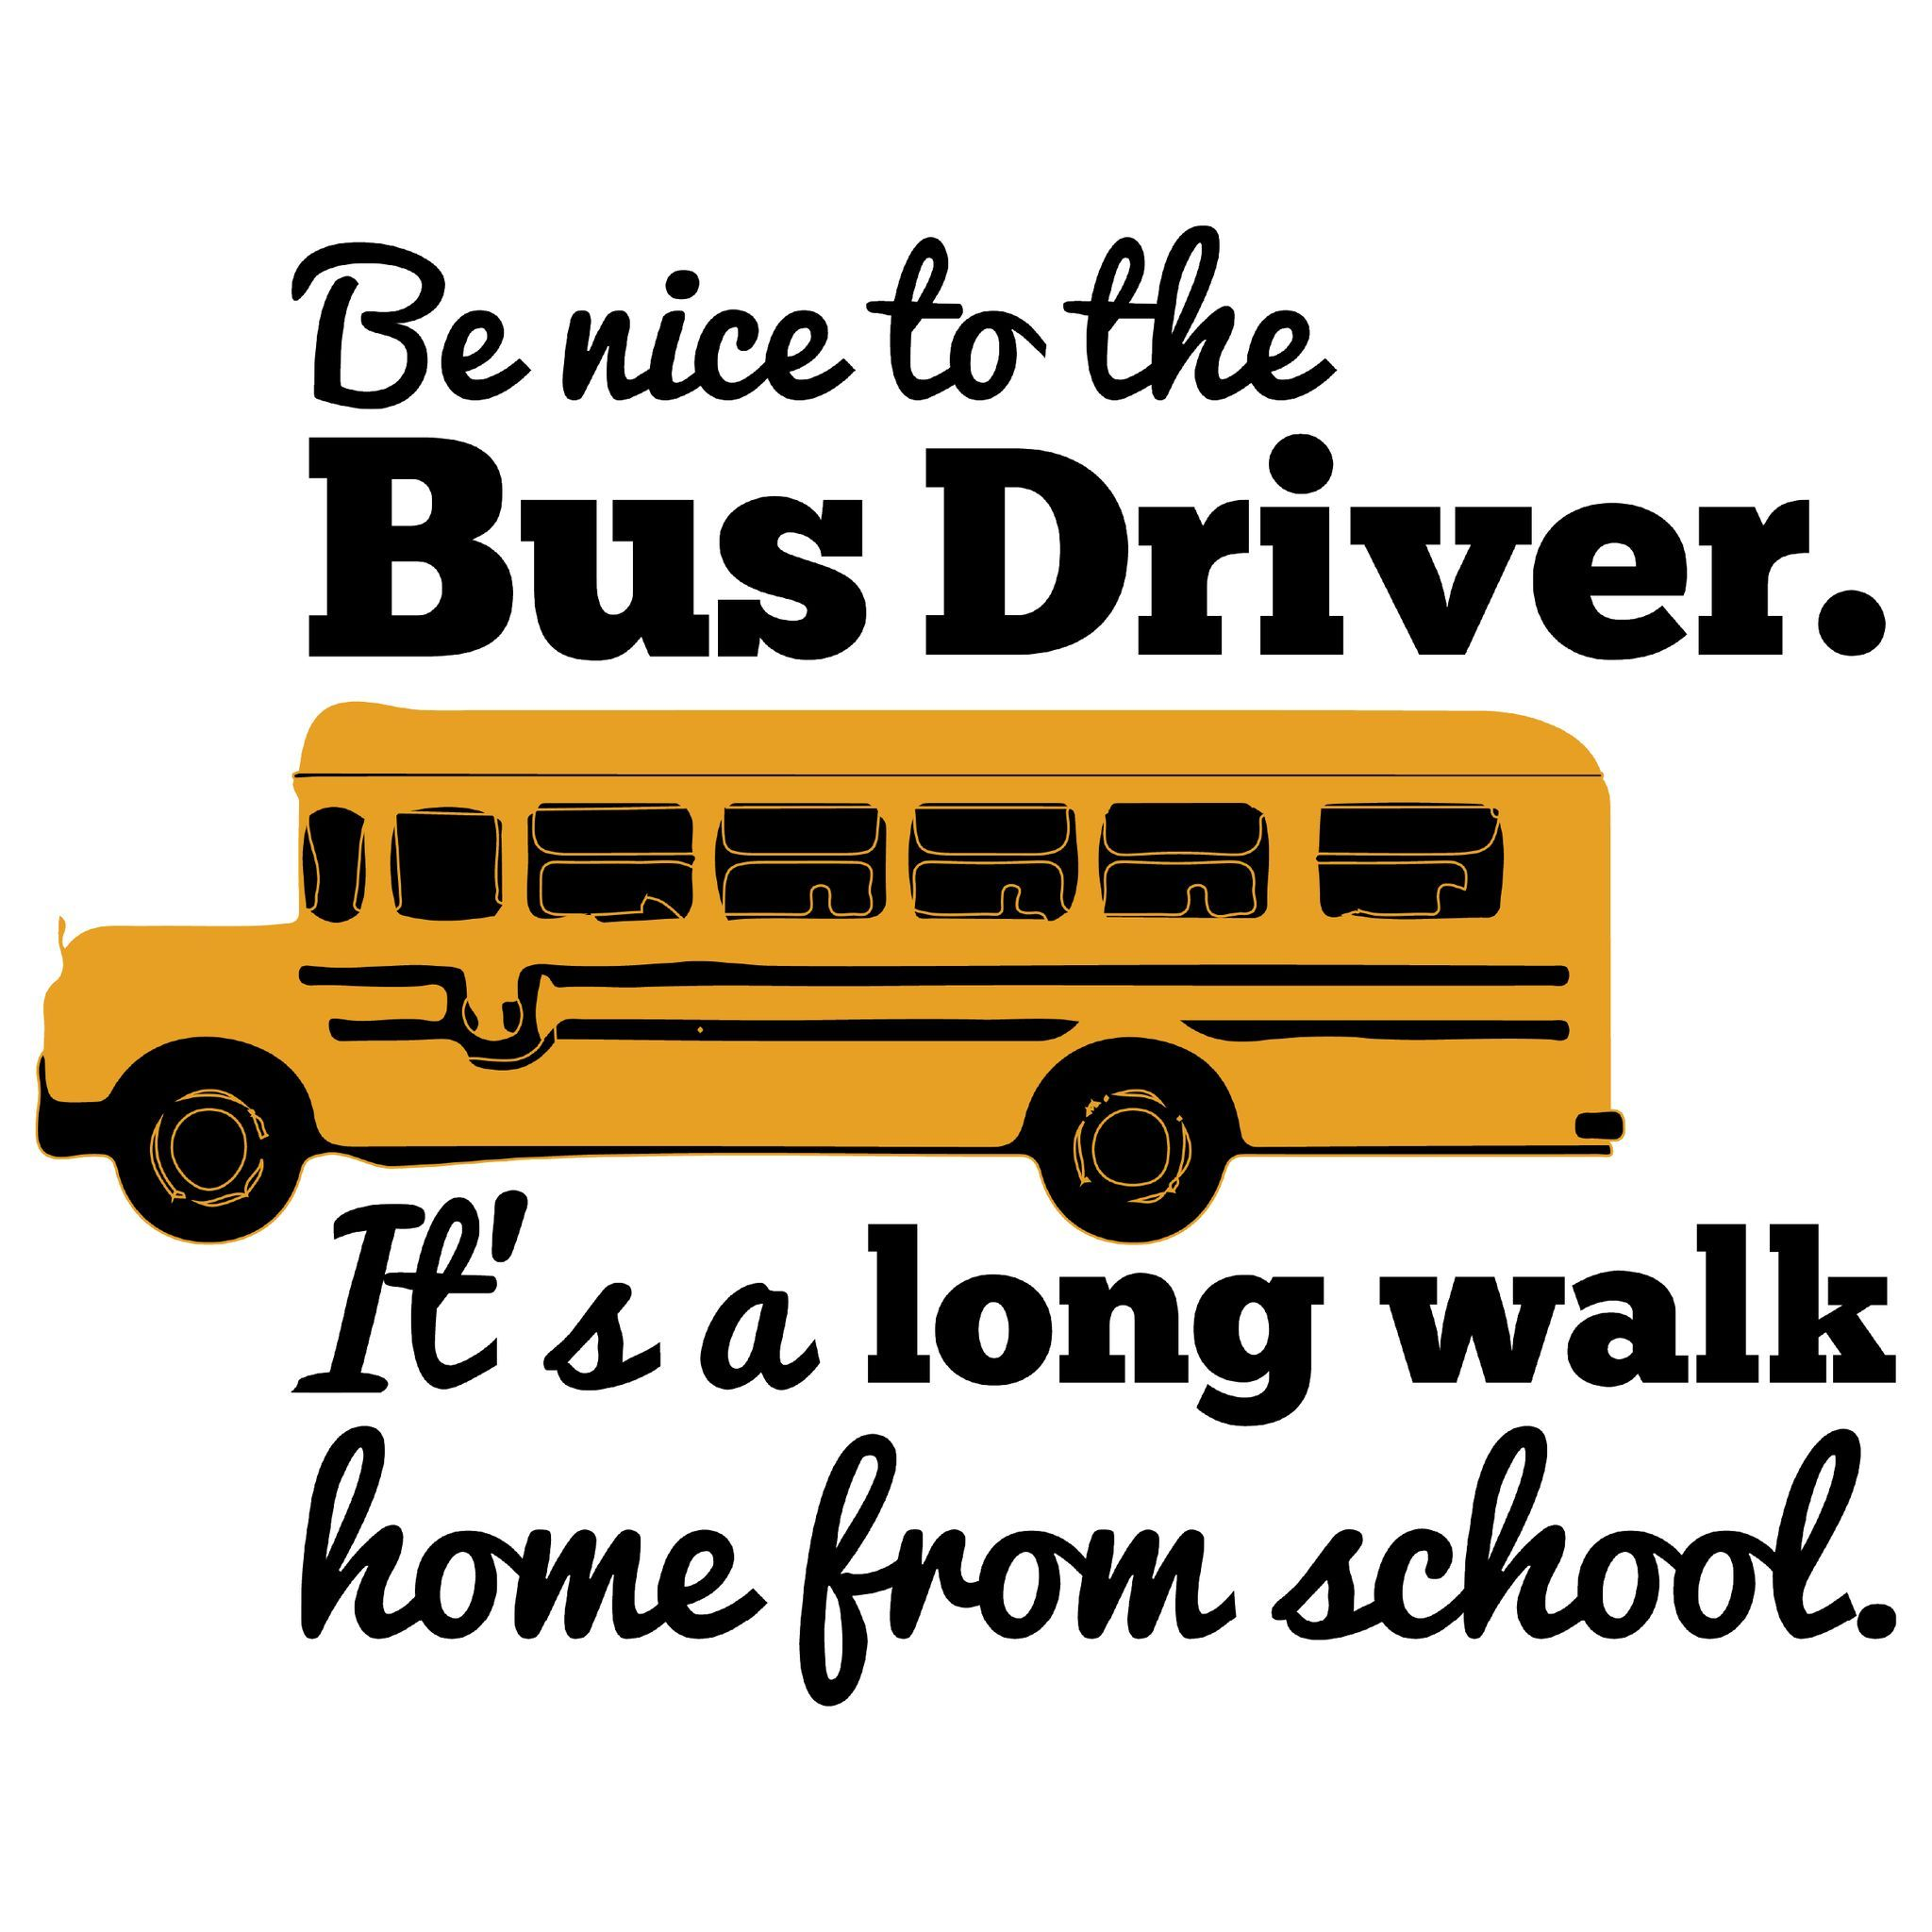 School Bus Driver Be Nice With Images School Bus Driver Gift